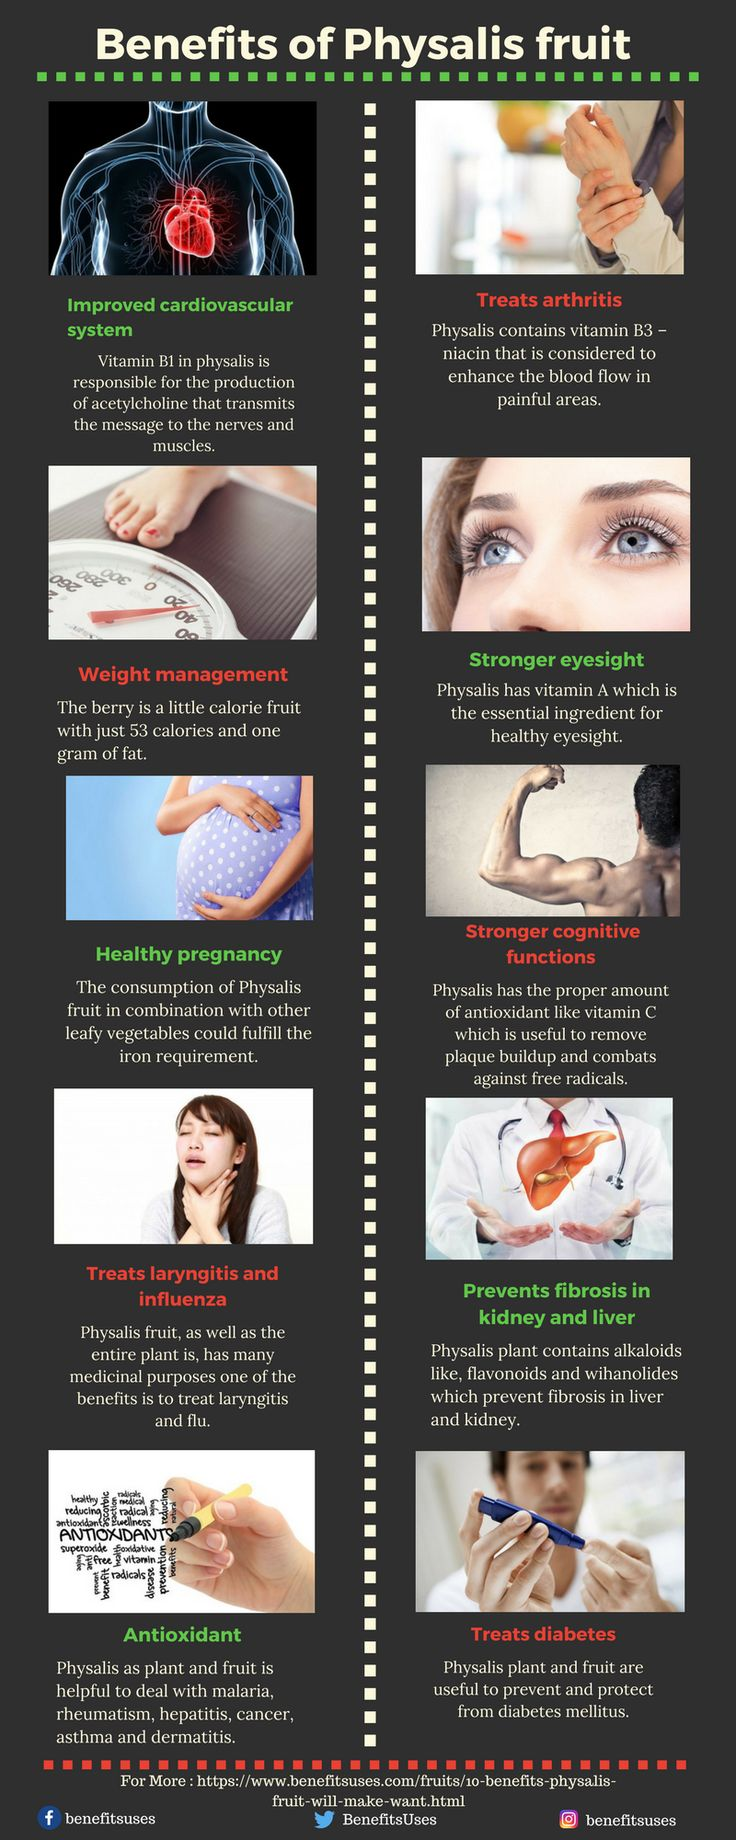 Benefits of Physalis fruit will make you want it more. #infographic http://bit.ly/2mvUxoF